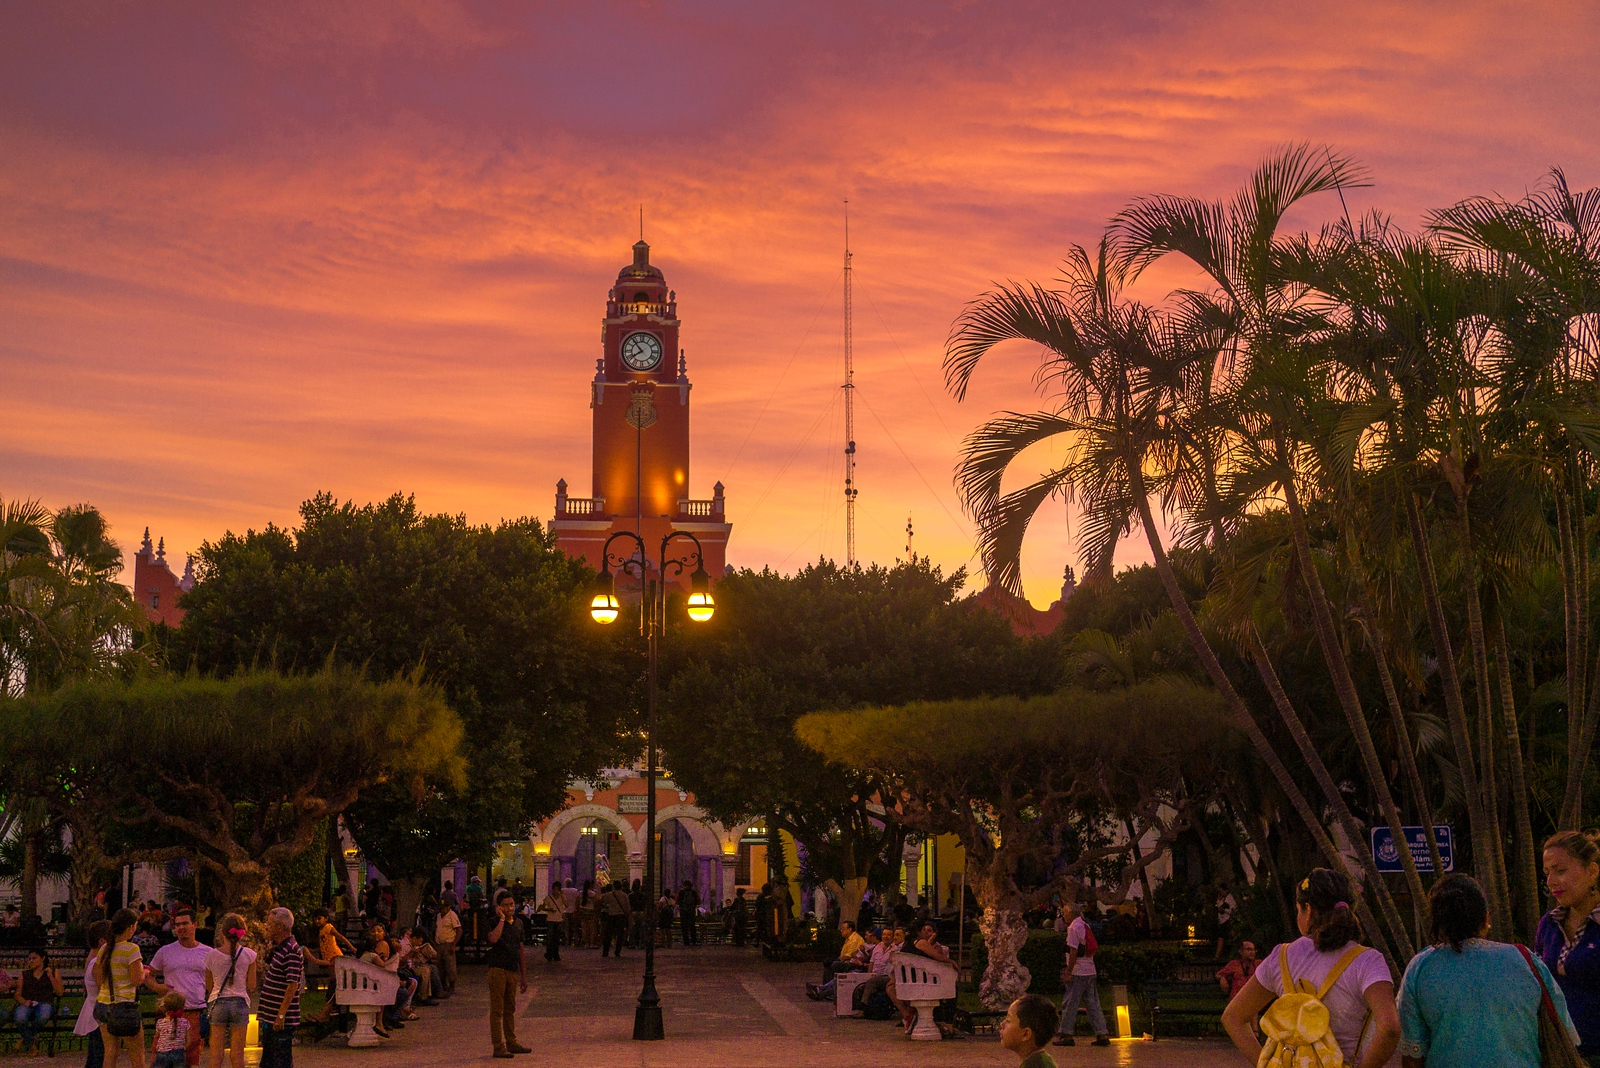 sunset in merida